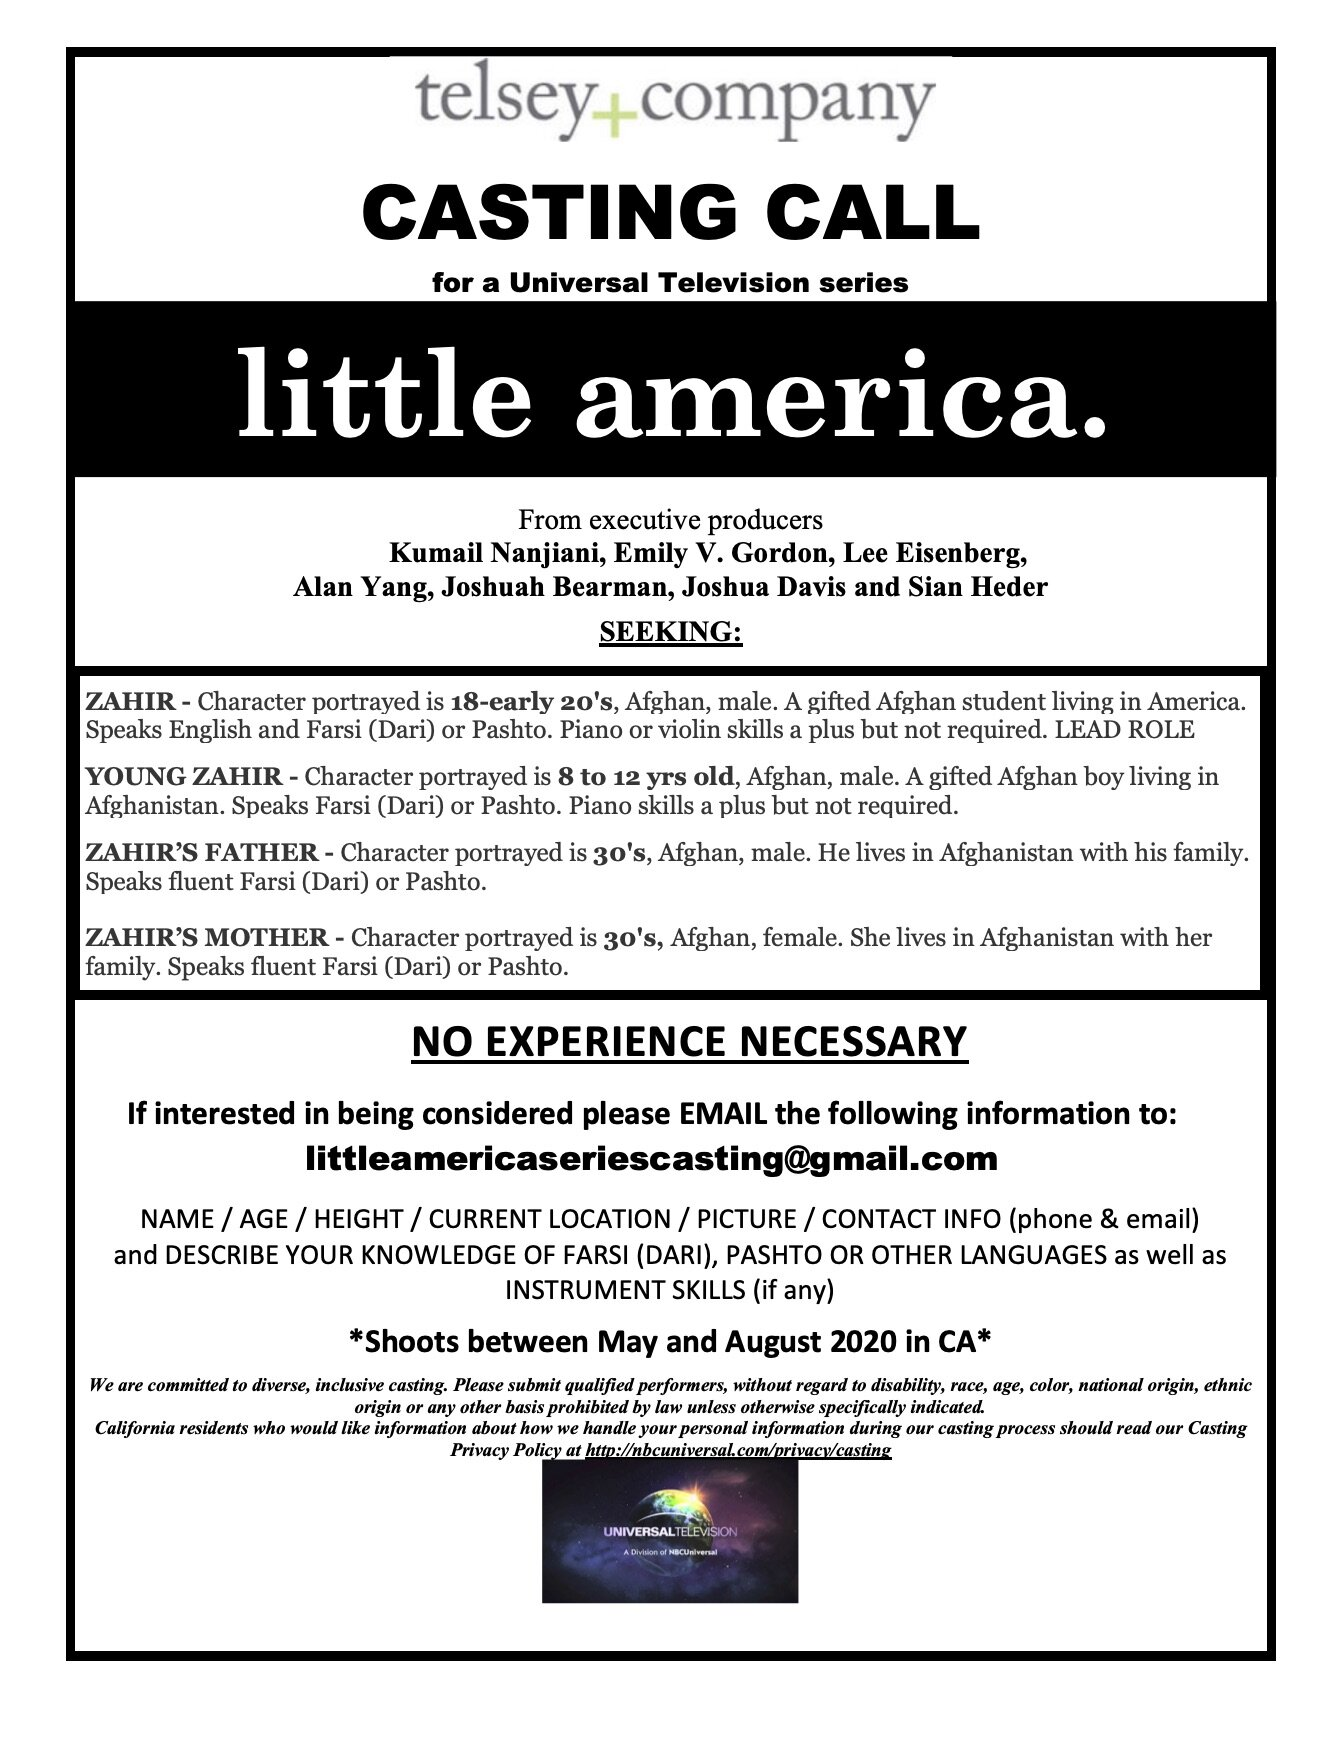 CASTING CALL FOR AFGHAN ACTORS: LITTLE AMERICA TV SHOW